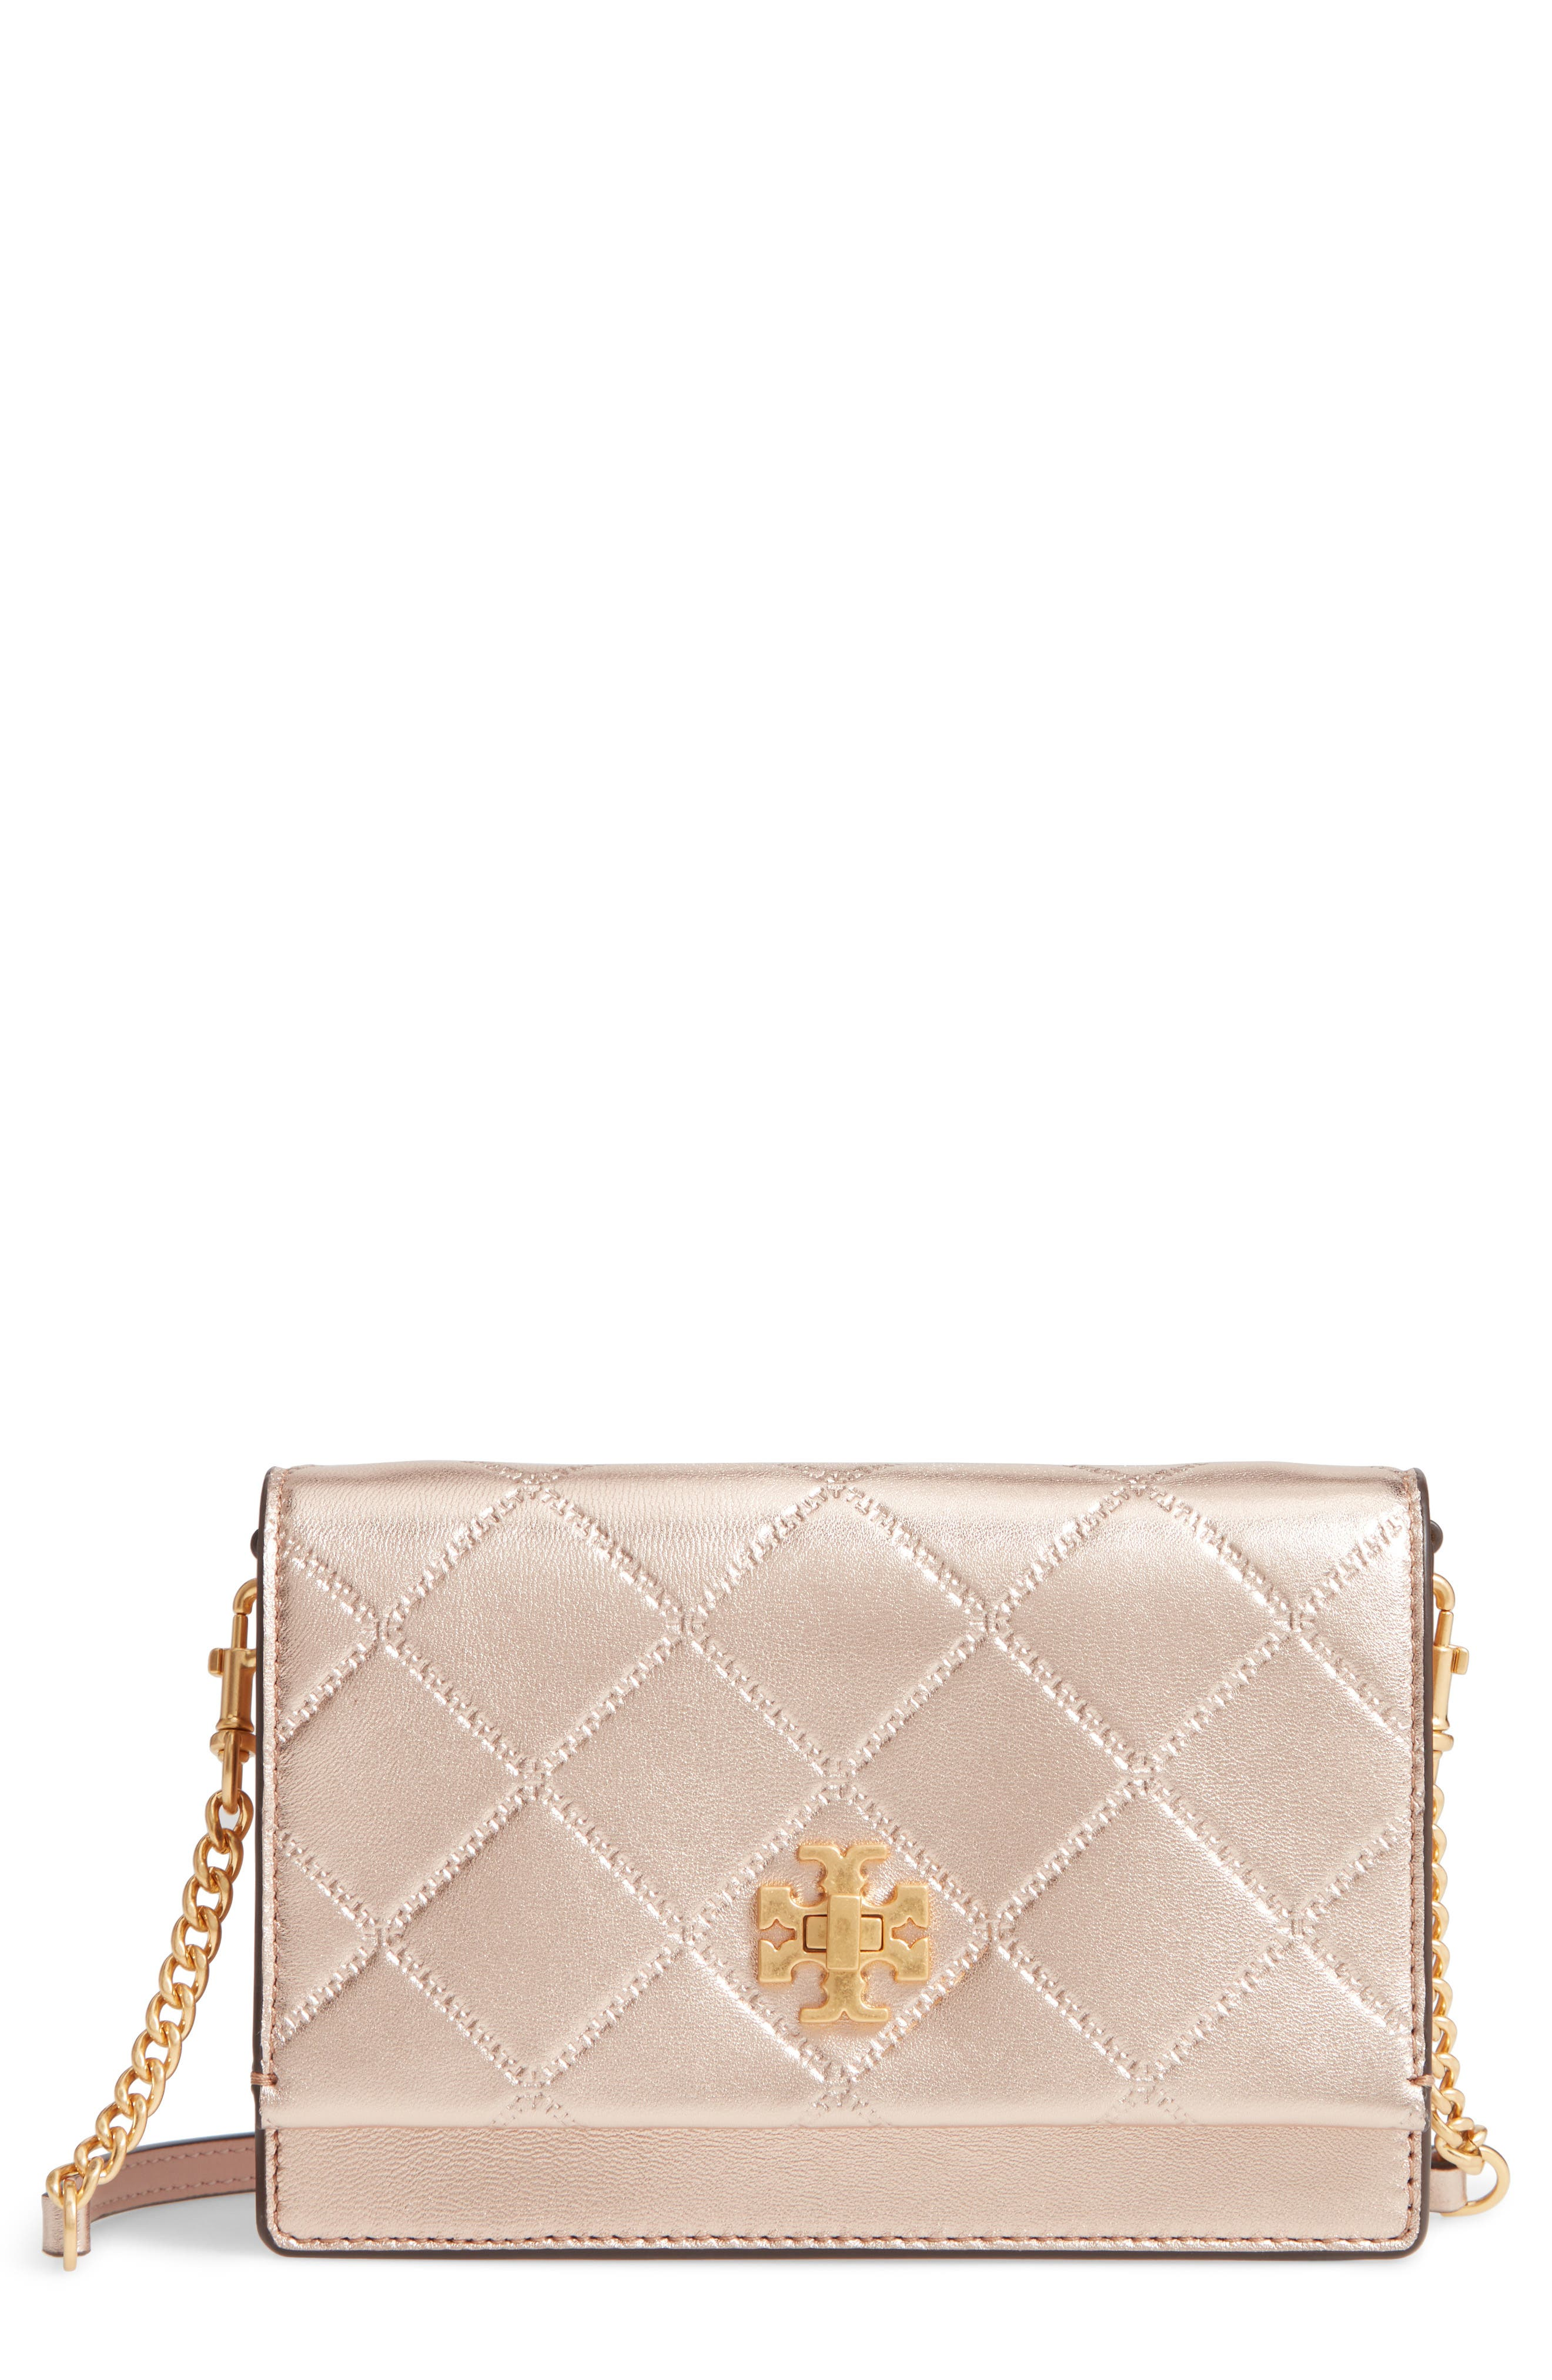 TORY BURCH Mini Georgia Quilted Metallic Leather Shoulder Bag, Main, color, 650